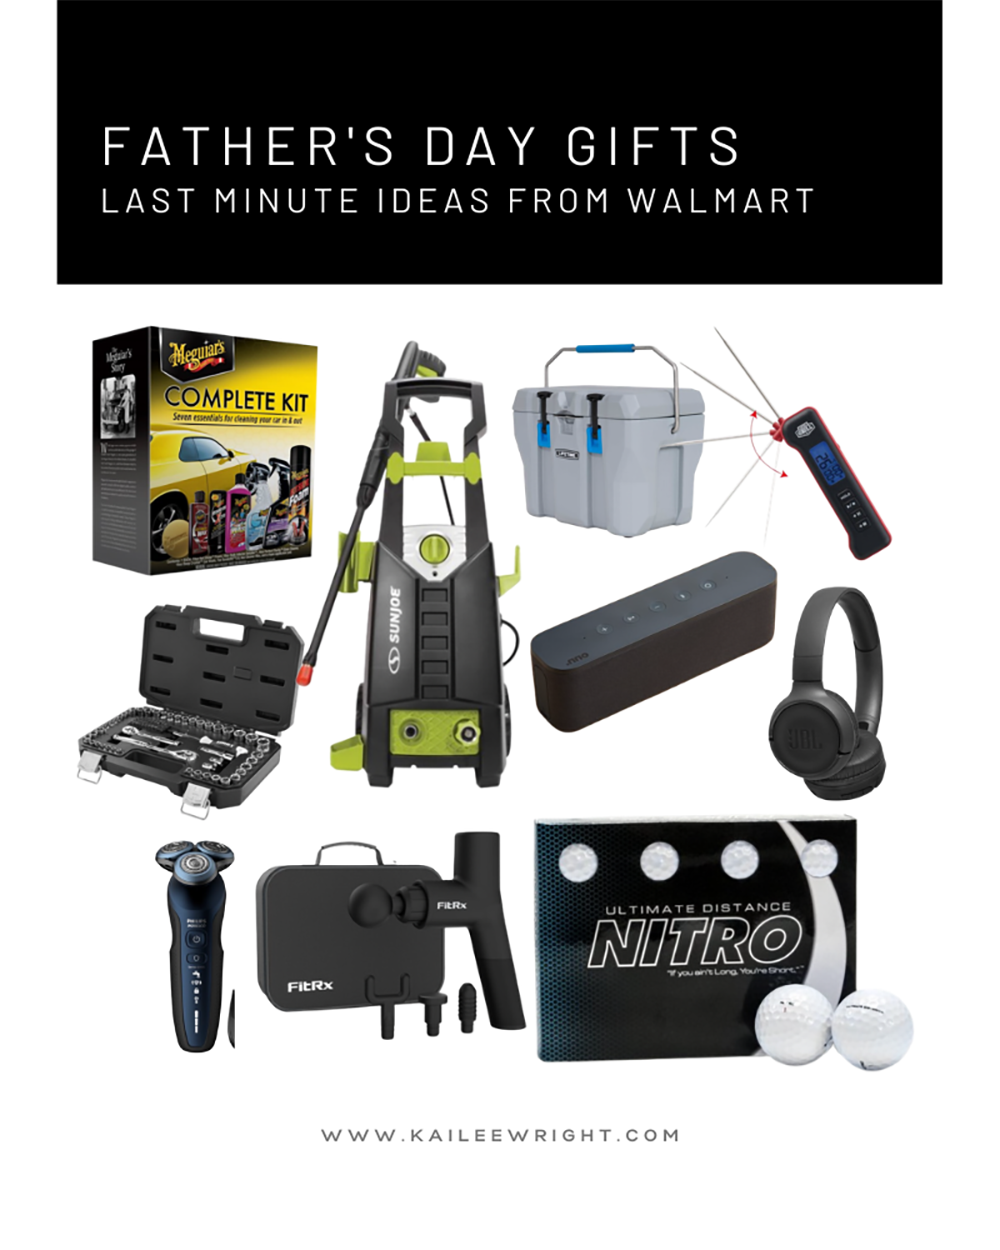 Father's Day gifts Walmart